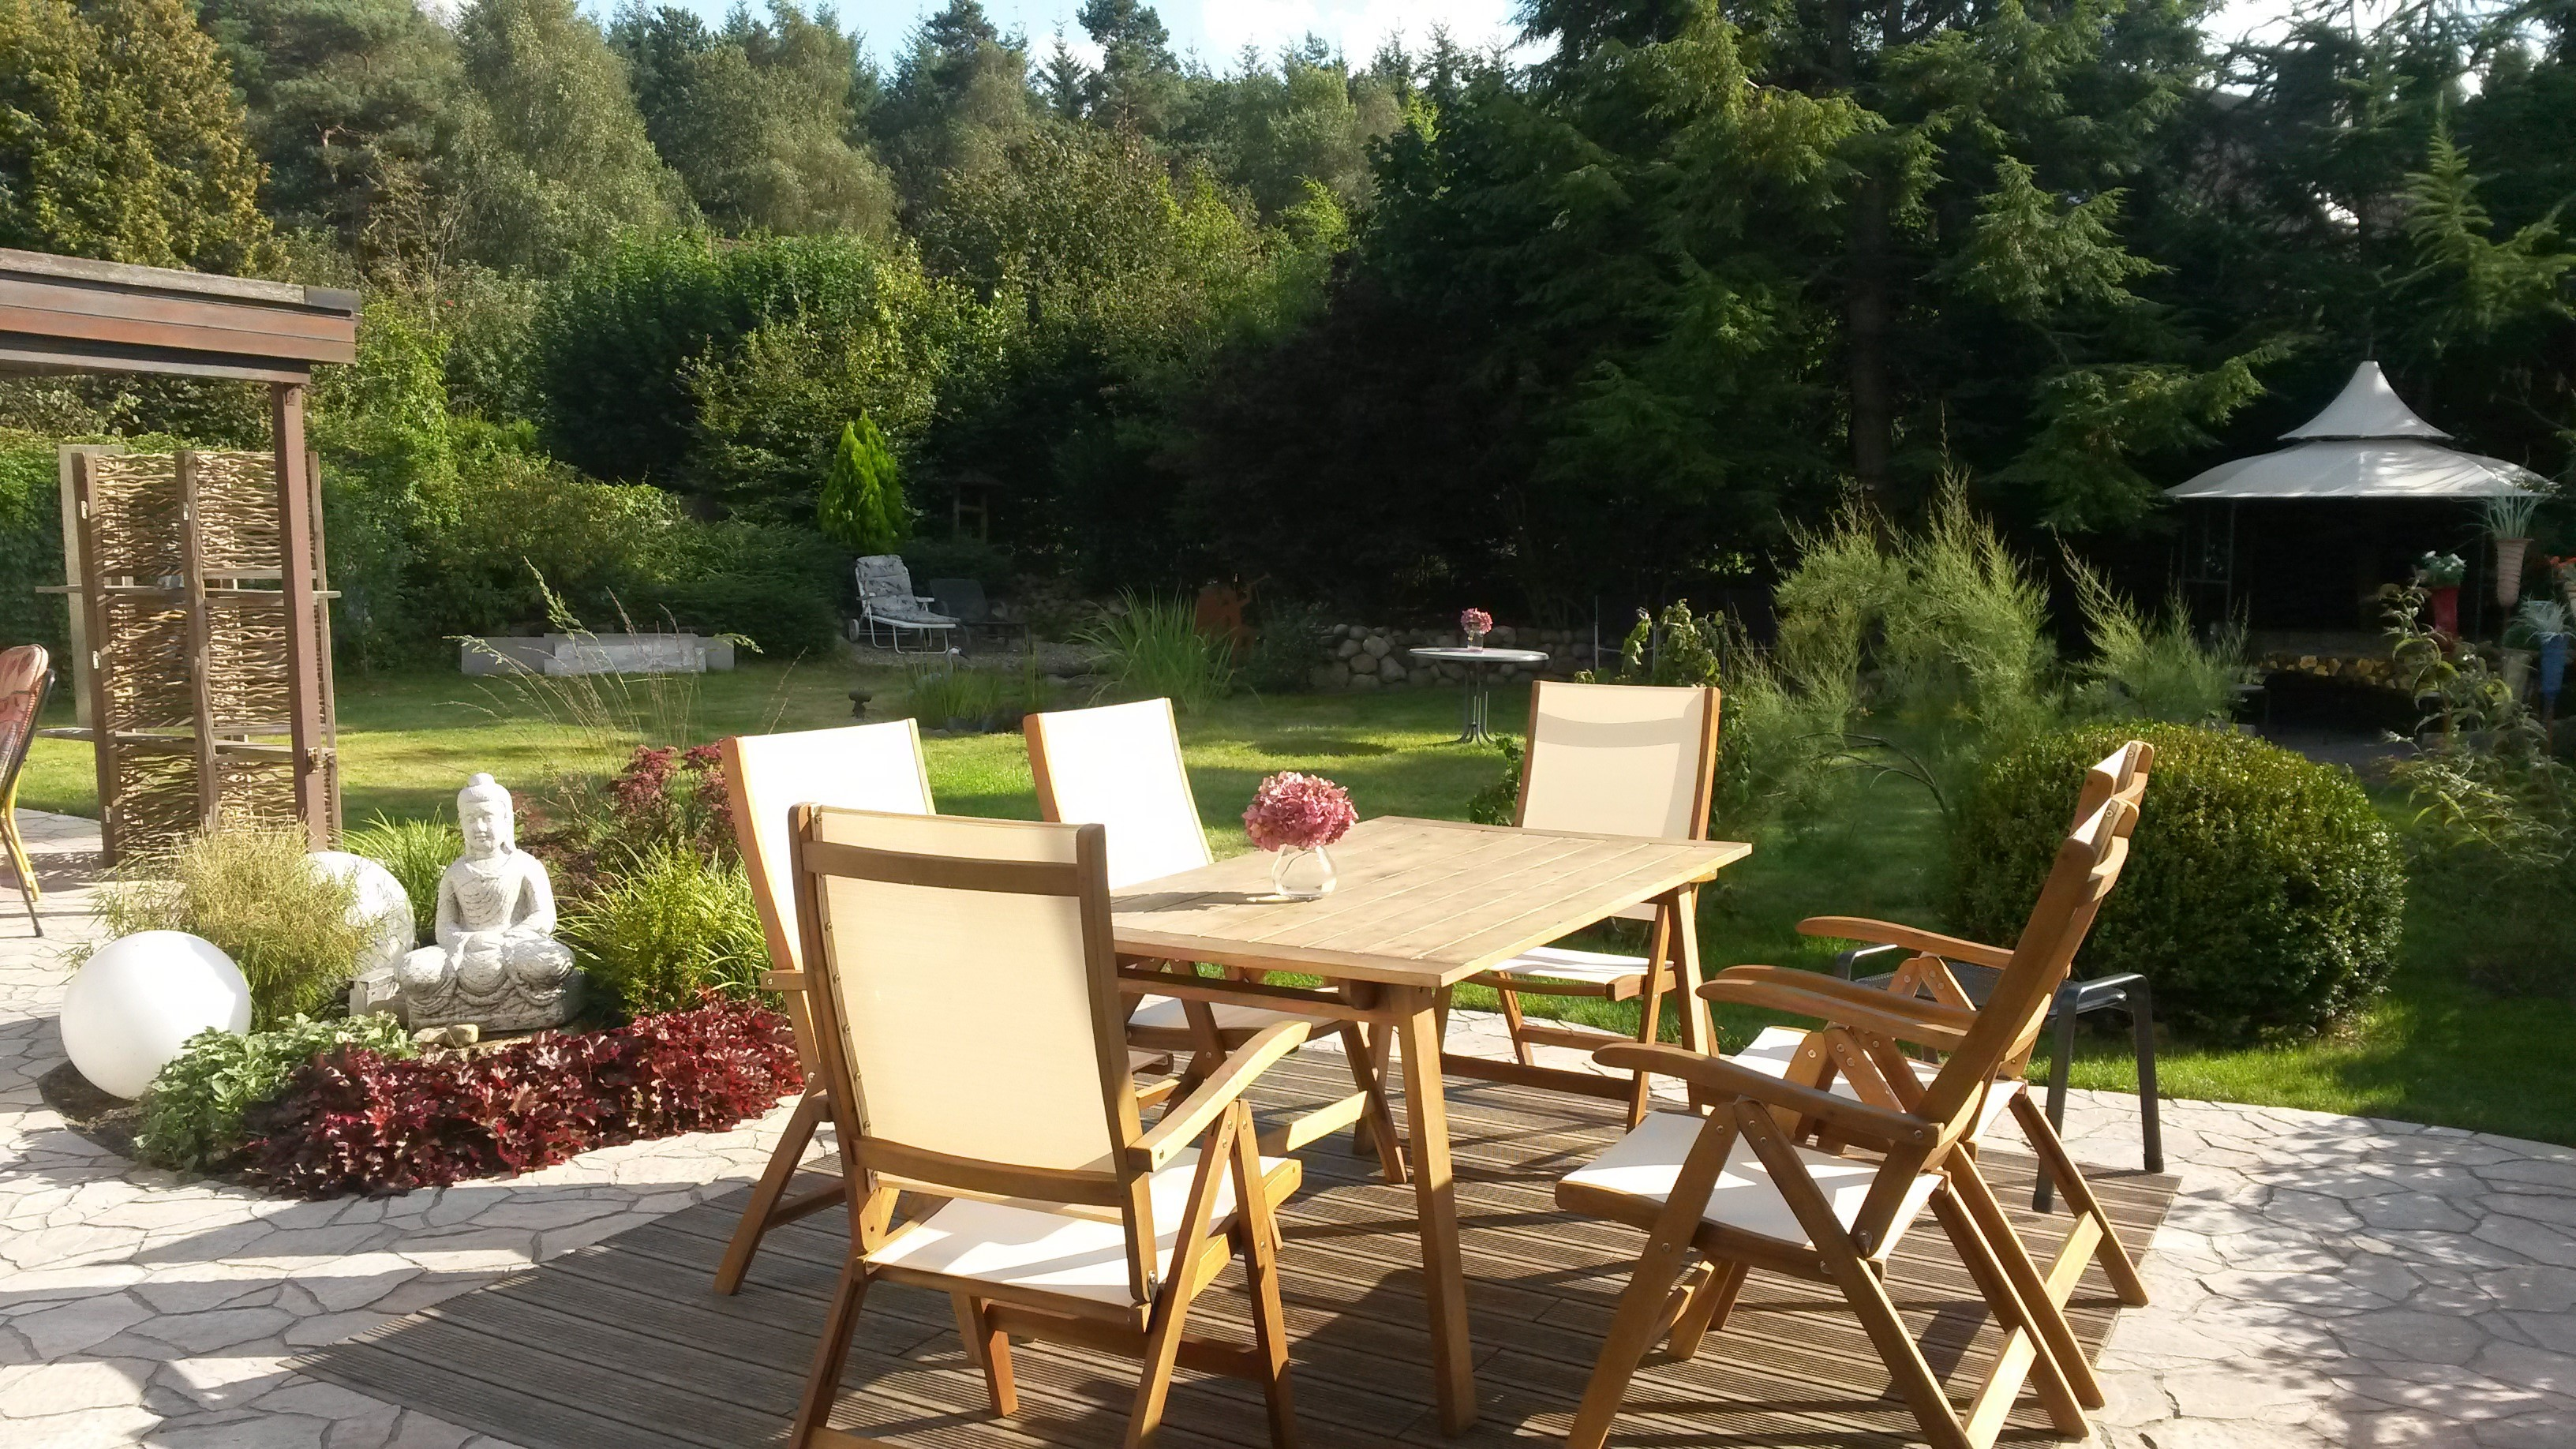 Book Schlafen in Rosengarten with tajawal, Book Now at best low Prices.